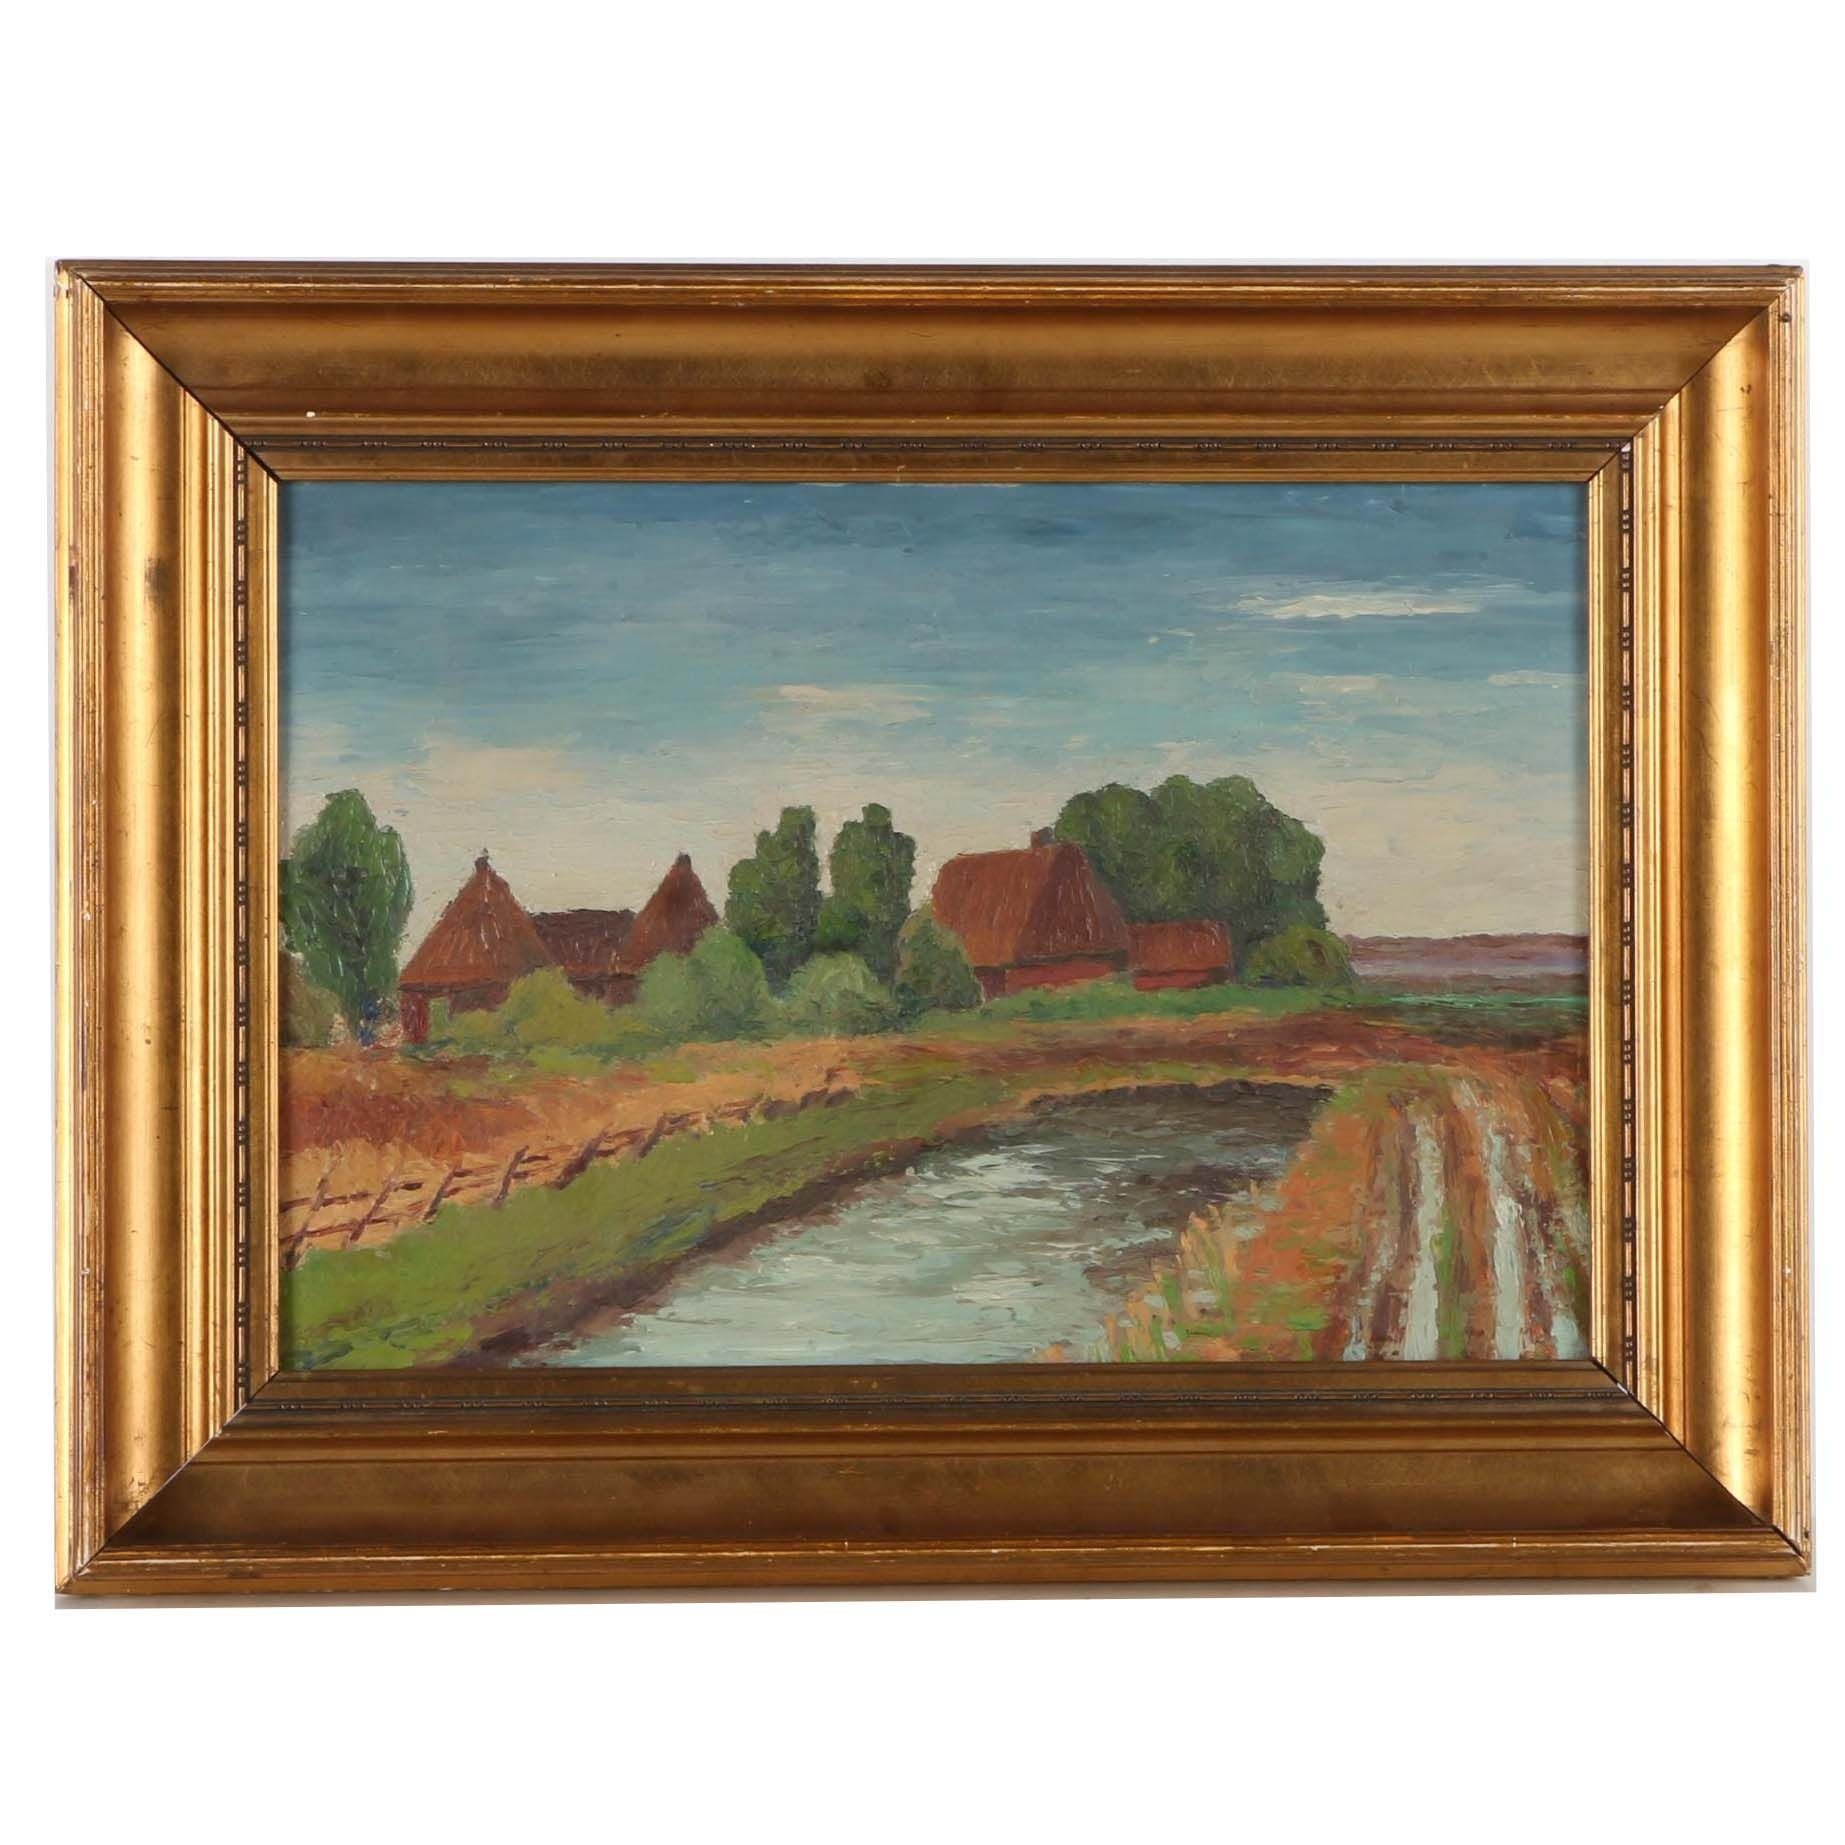 Oil Painting on Canvas of Pastoral Landscape